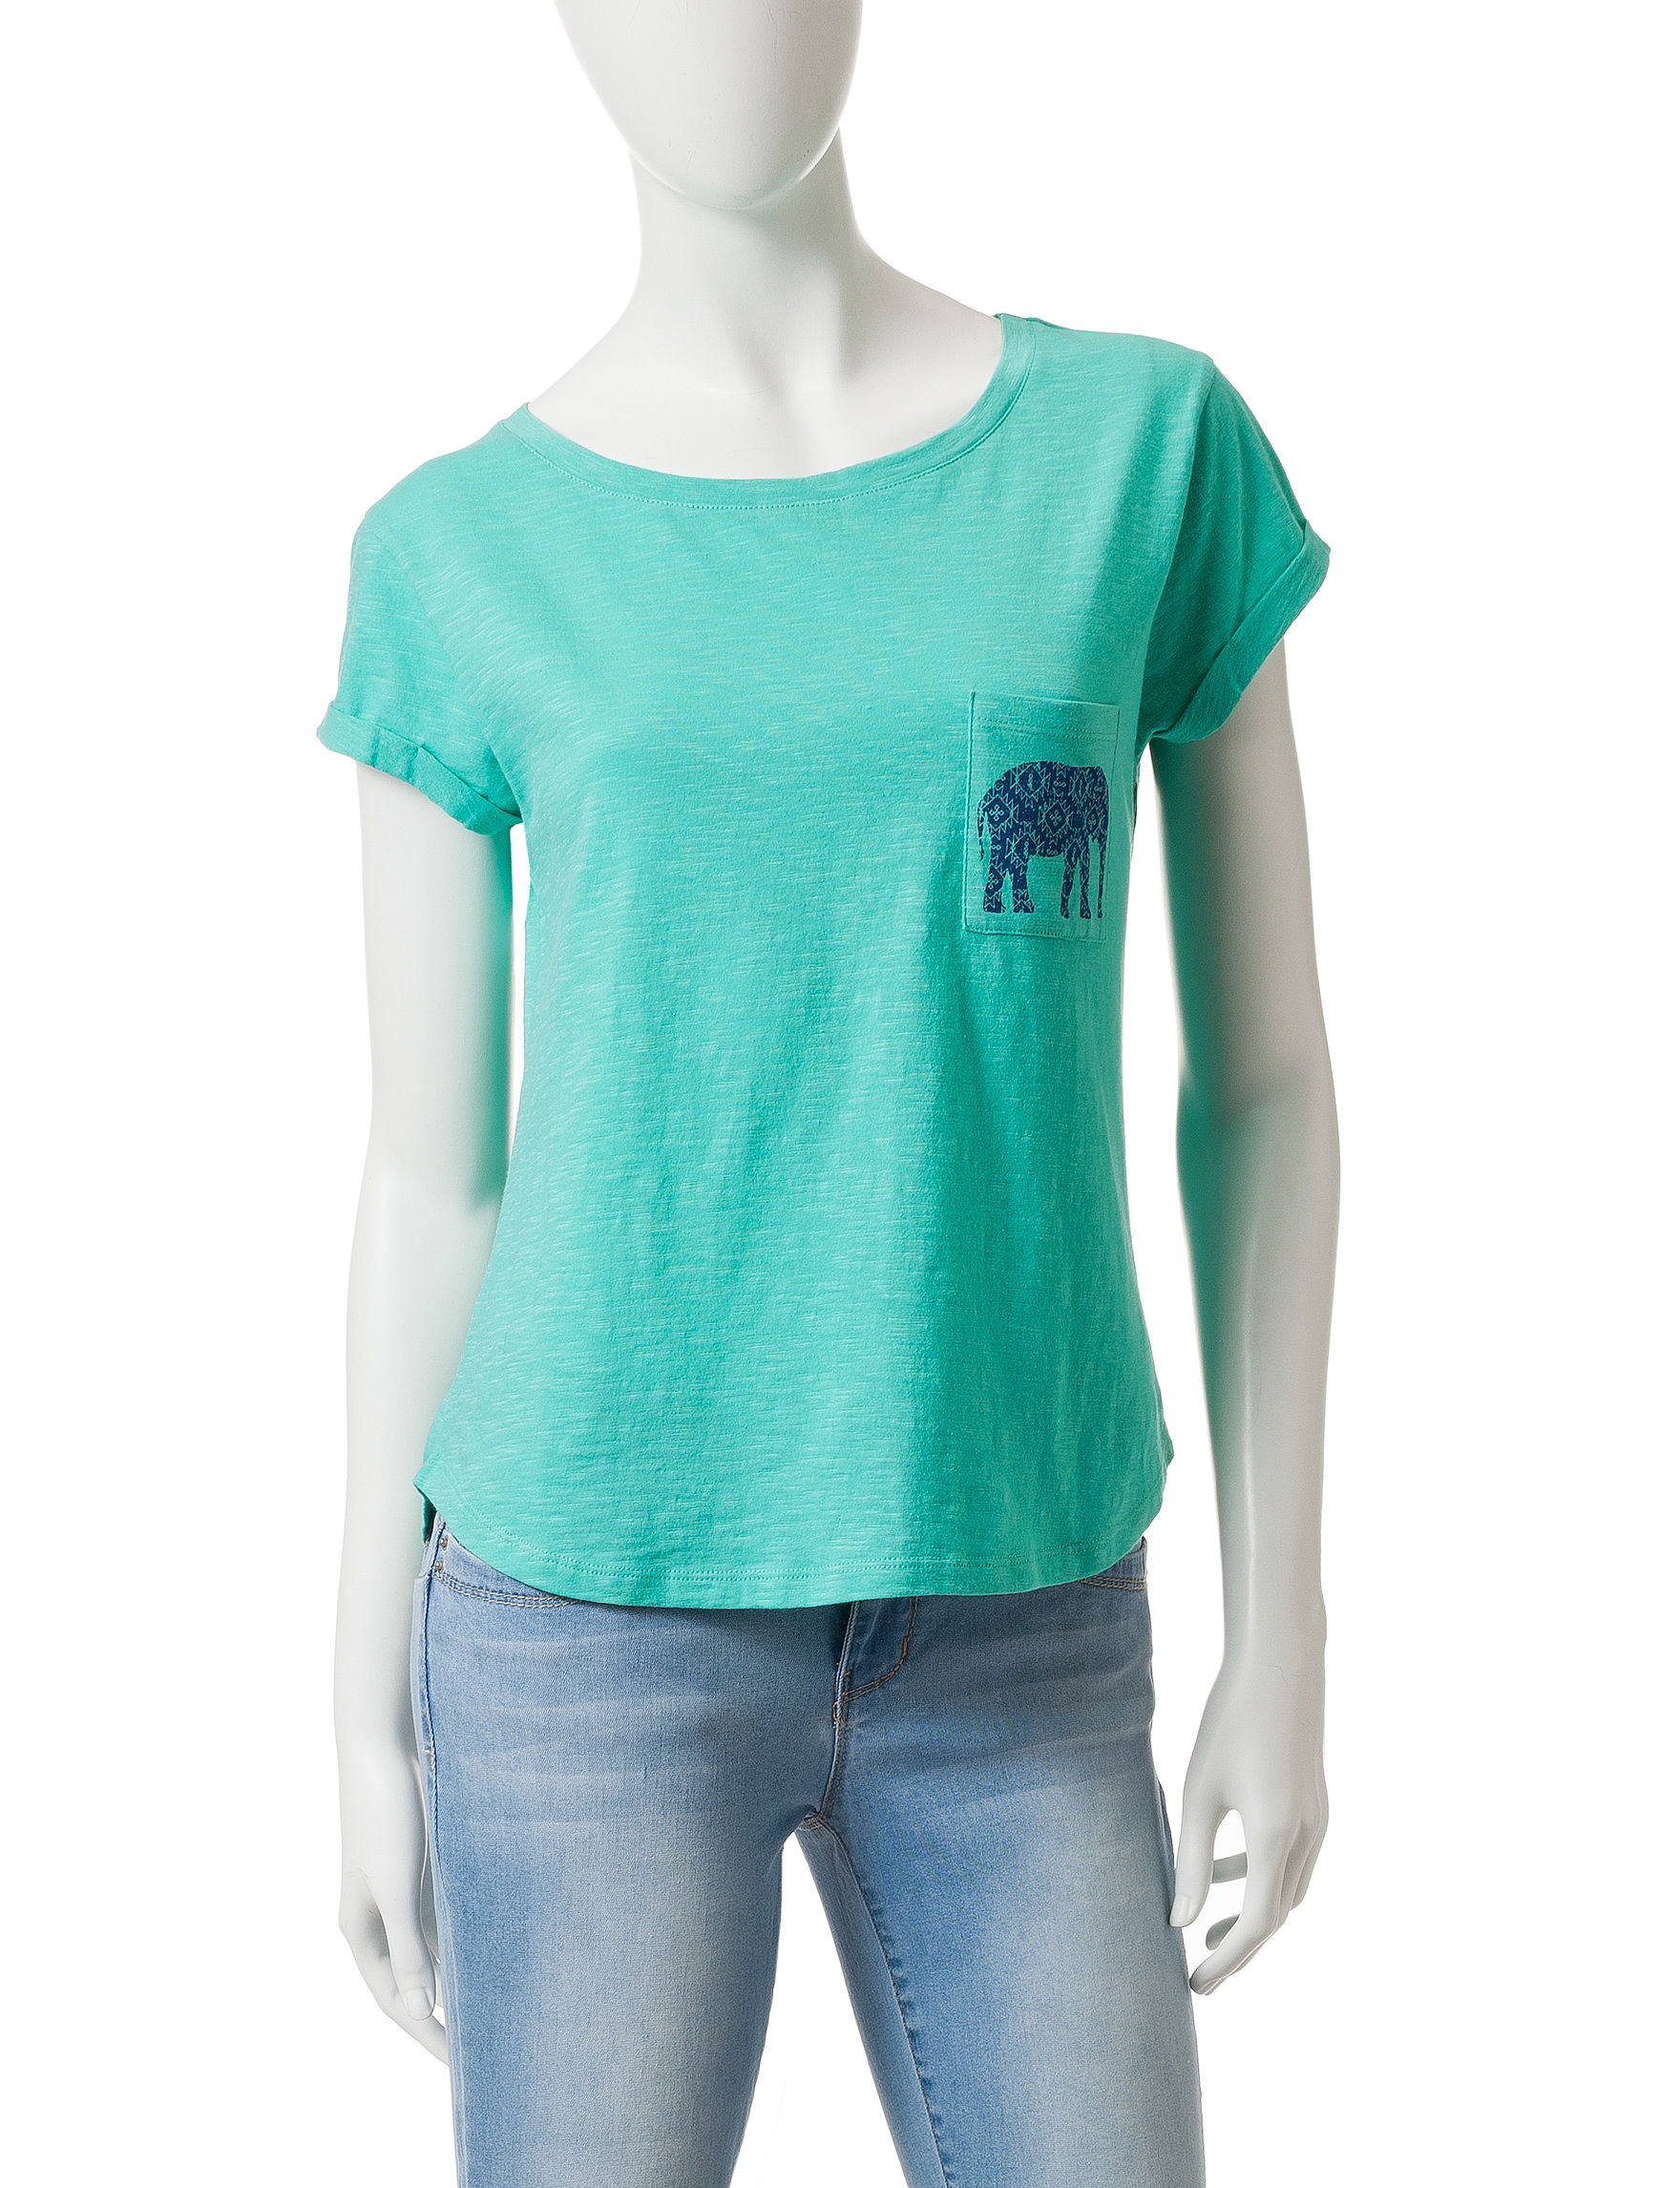 Wishful Park Turquoise Tees & Tanks